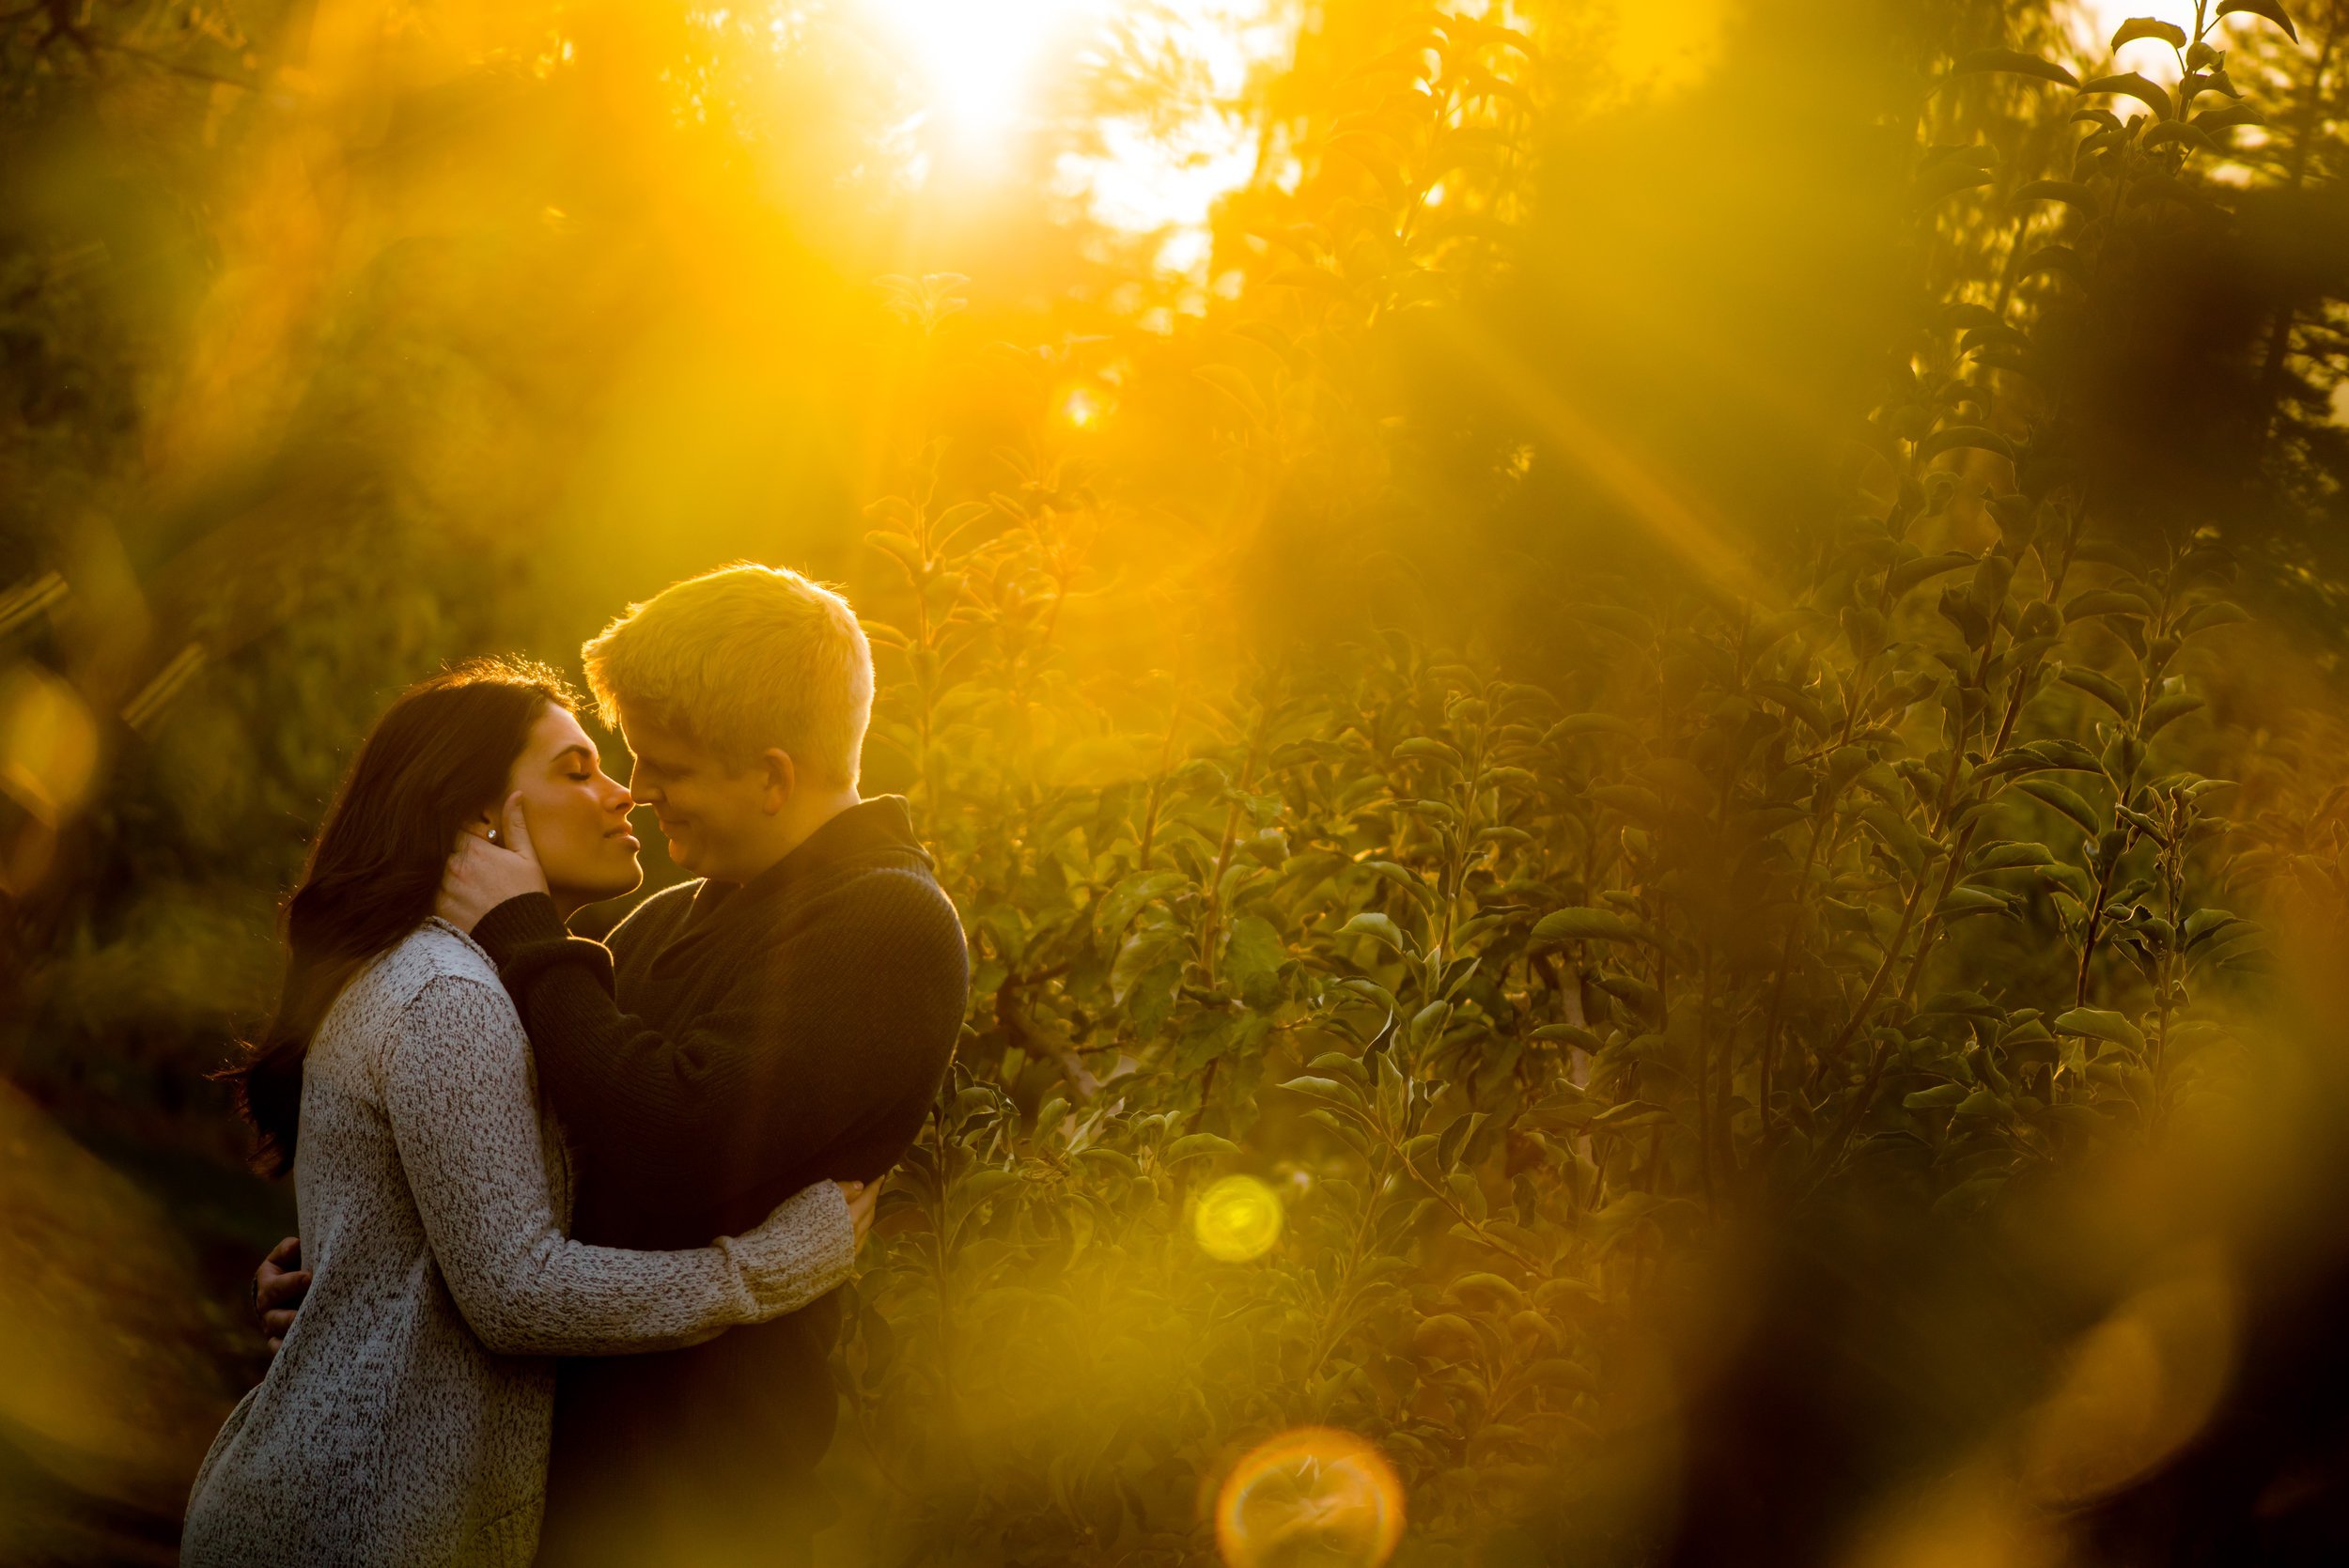 samantha-joel-001-apple-hill-engagement-photos-wedding-photographer-katherine-nicole-photography.JPG